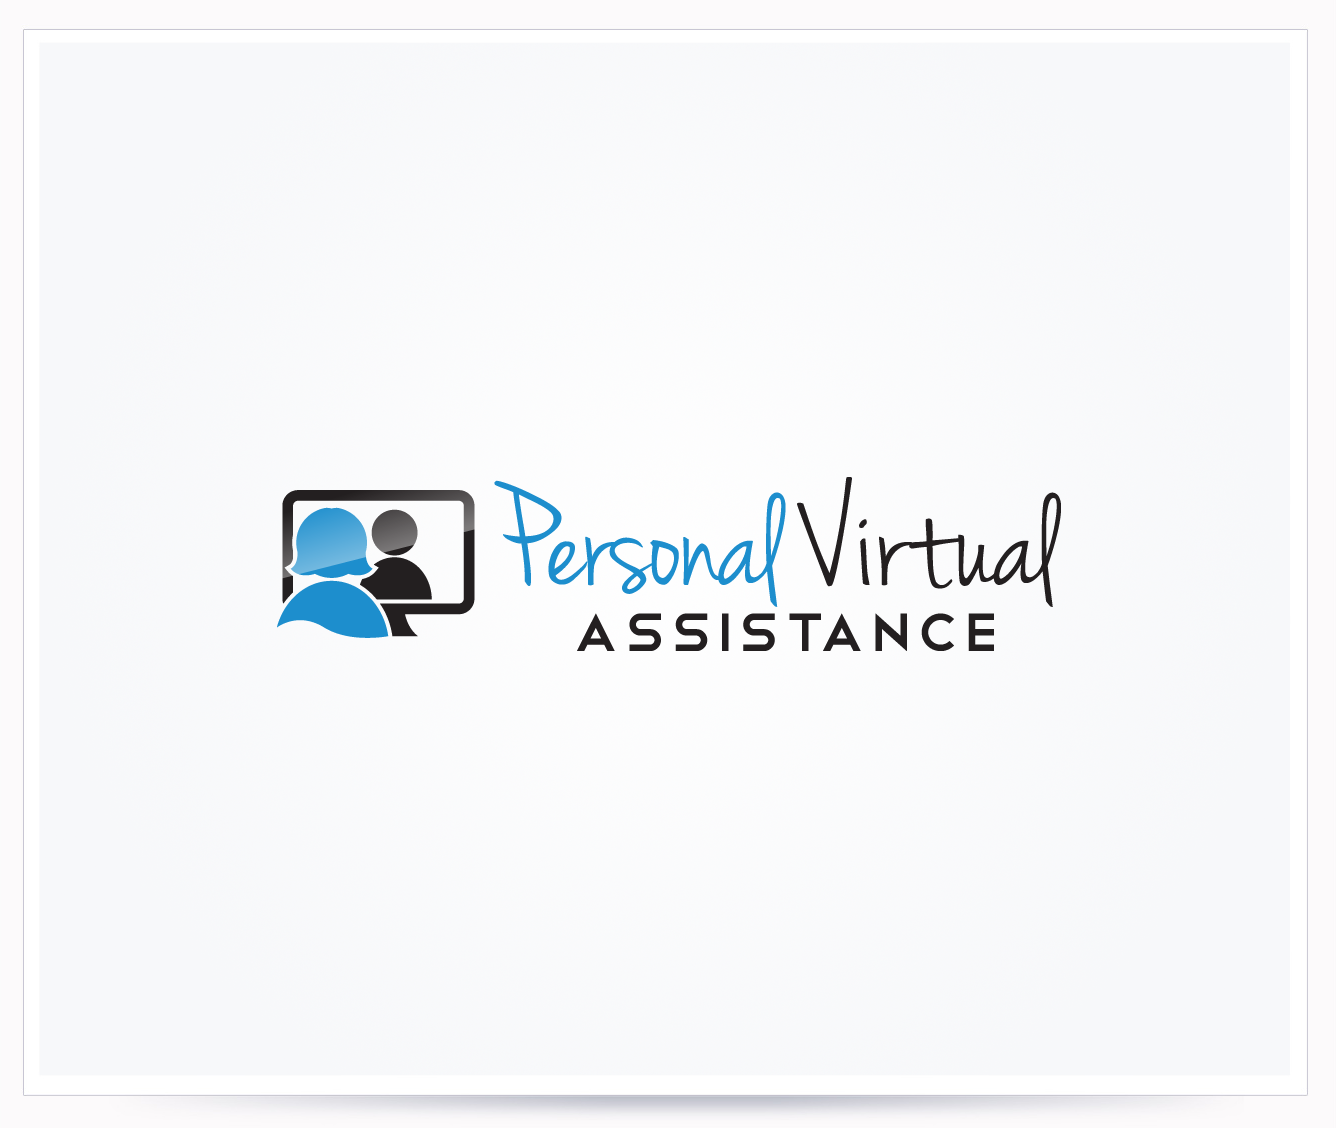 New logo wanted for Personal Virtual Assistance